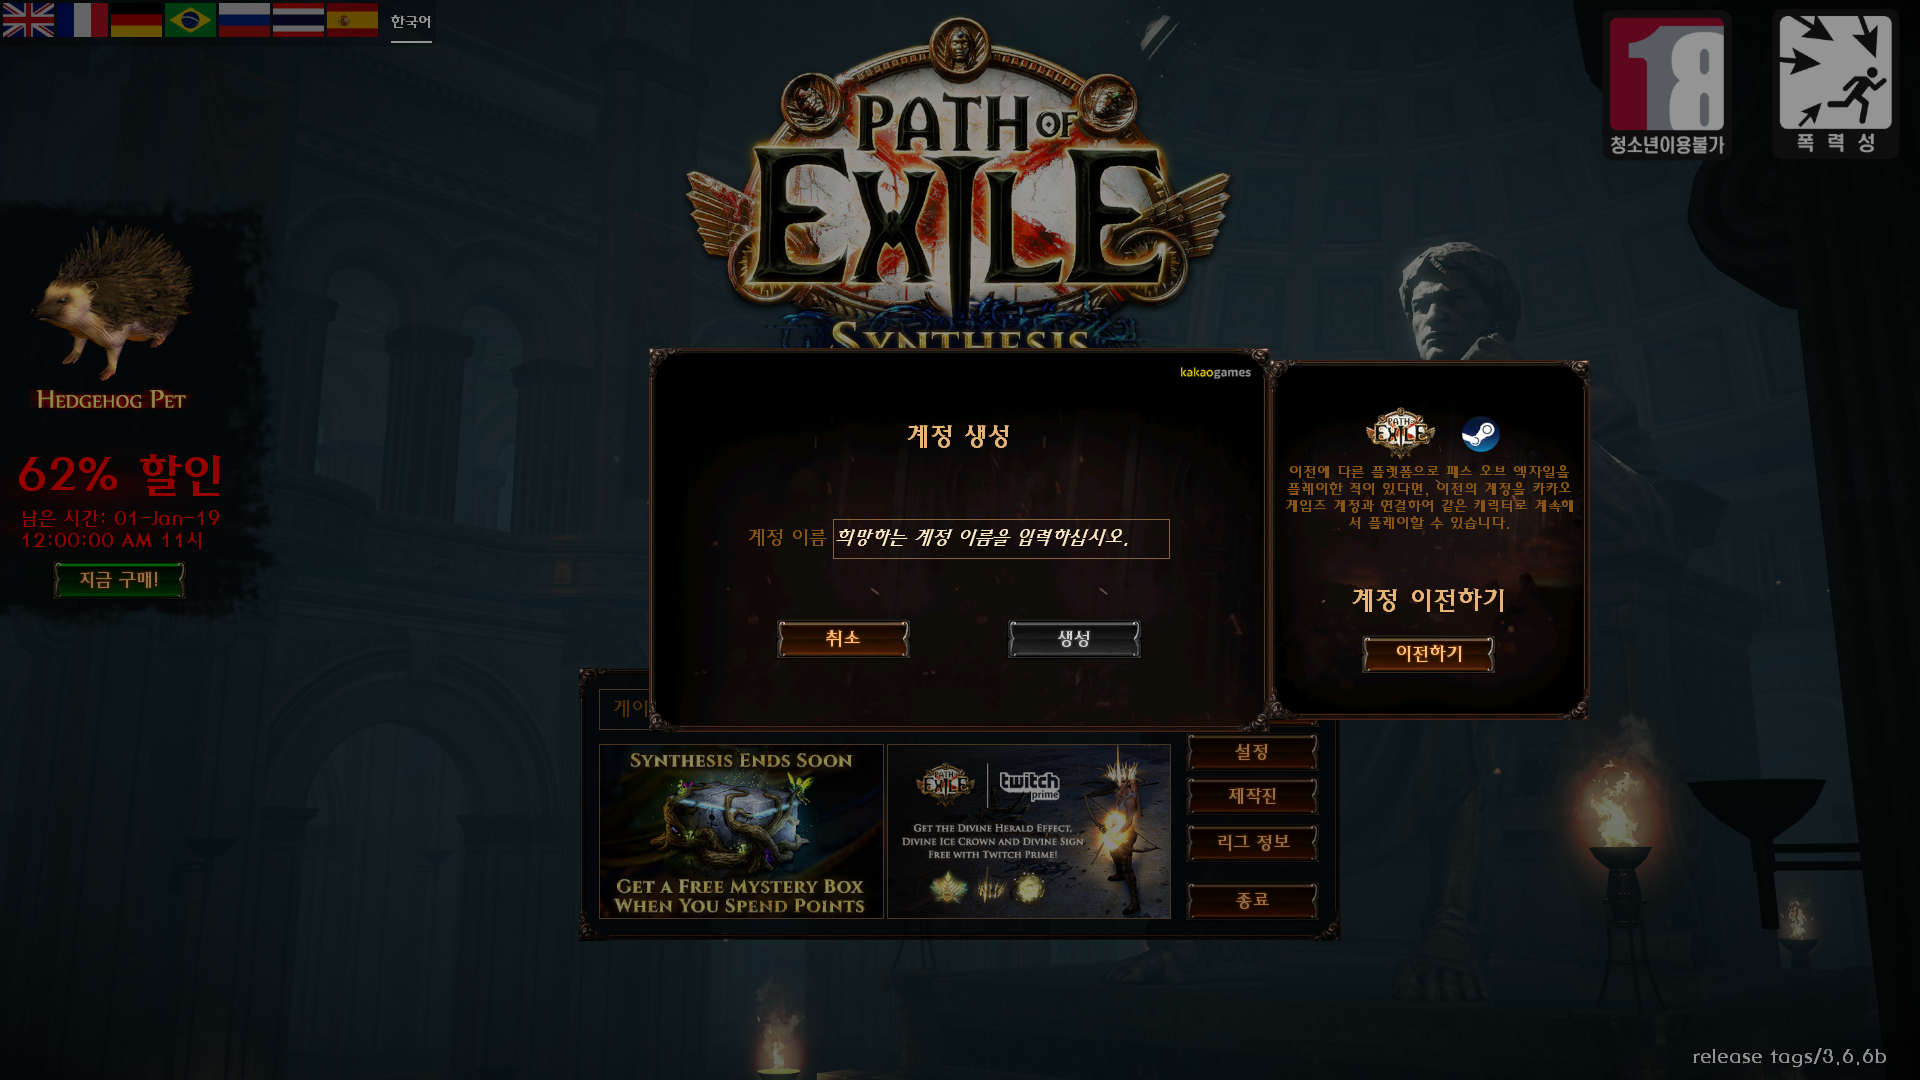 PathOfExile_x64_KG Screenshot 2019.06.03 - 01.40.04.41.png